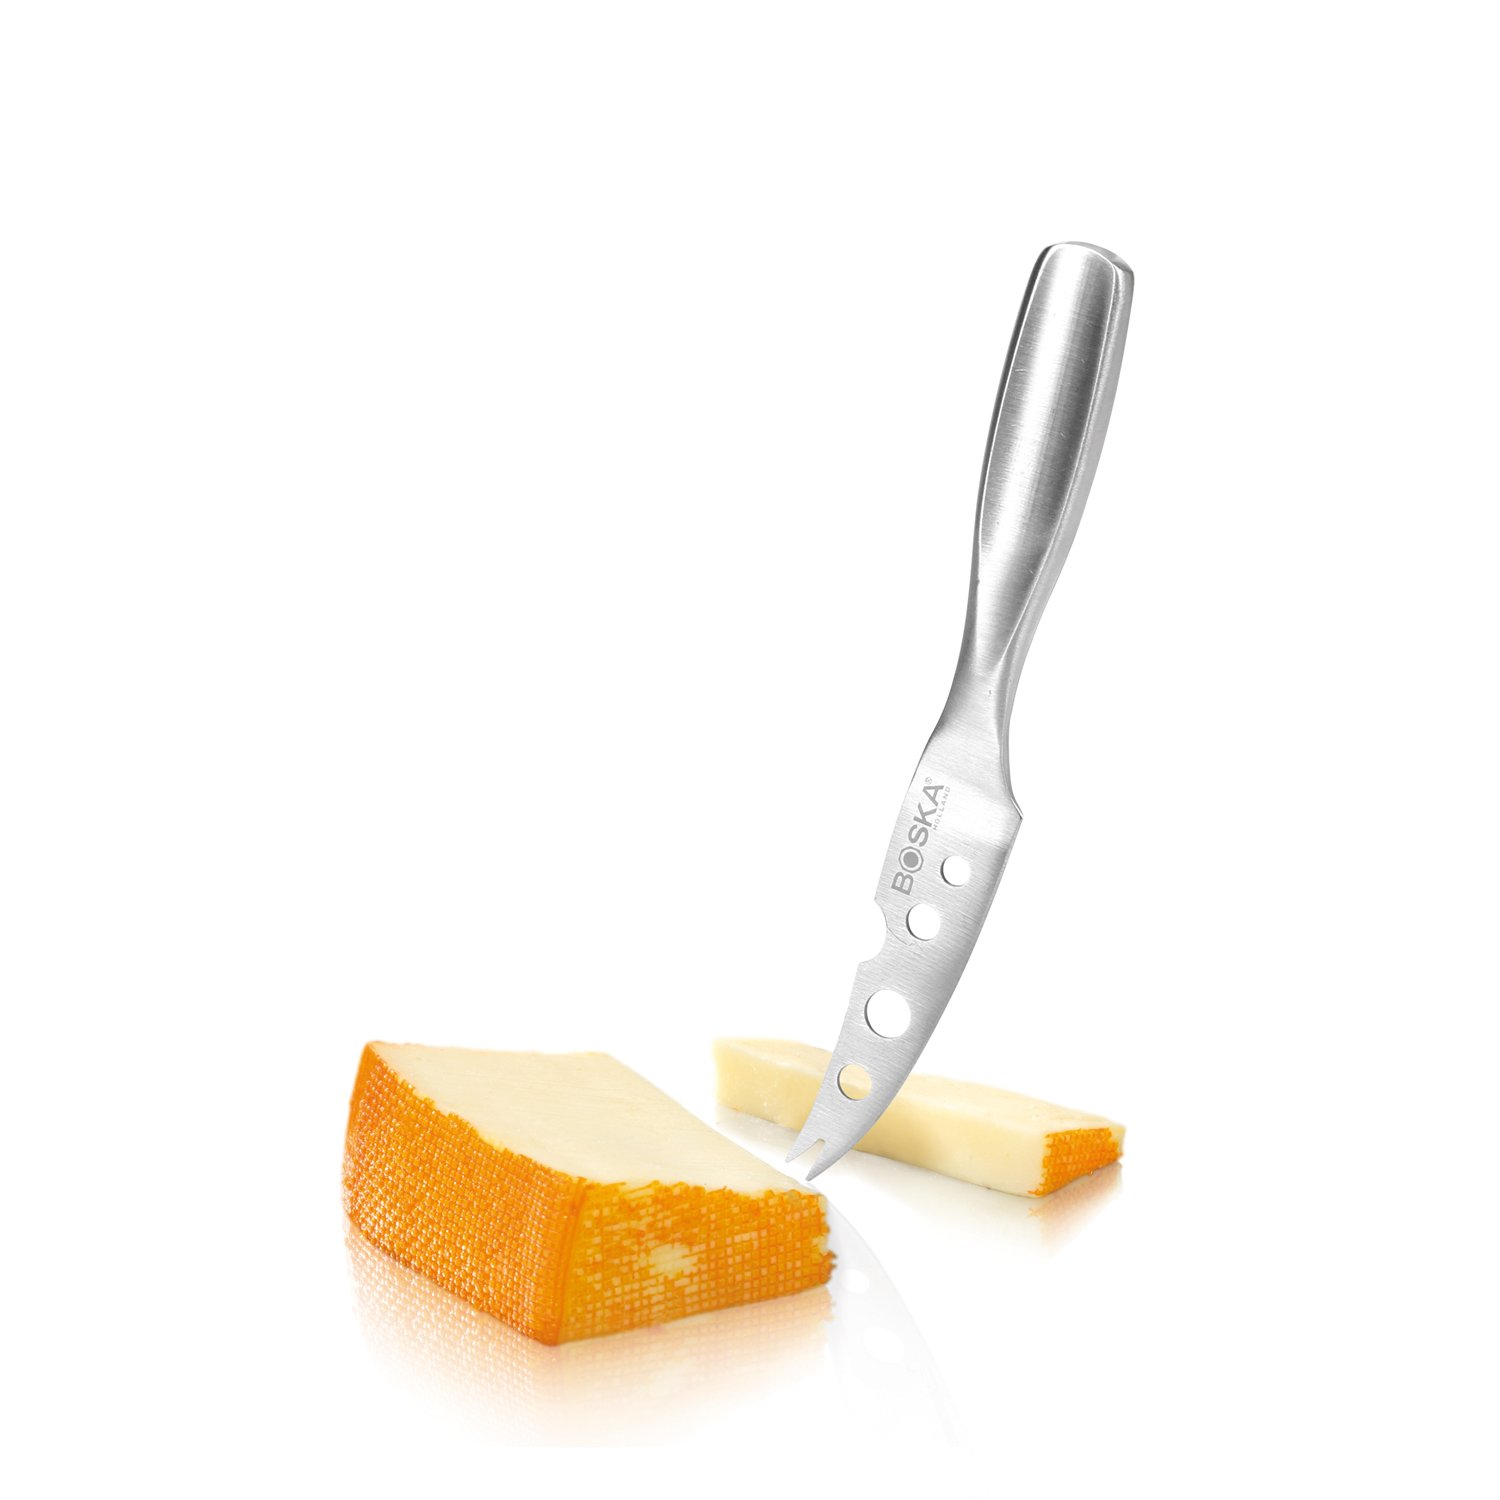 Boska Holland Stainless Steel Mini Cheese Knife, Cheesy Blade with Forked Tip, 10 Year Guarantee, Monaco Collection